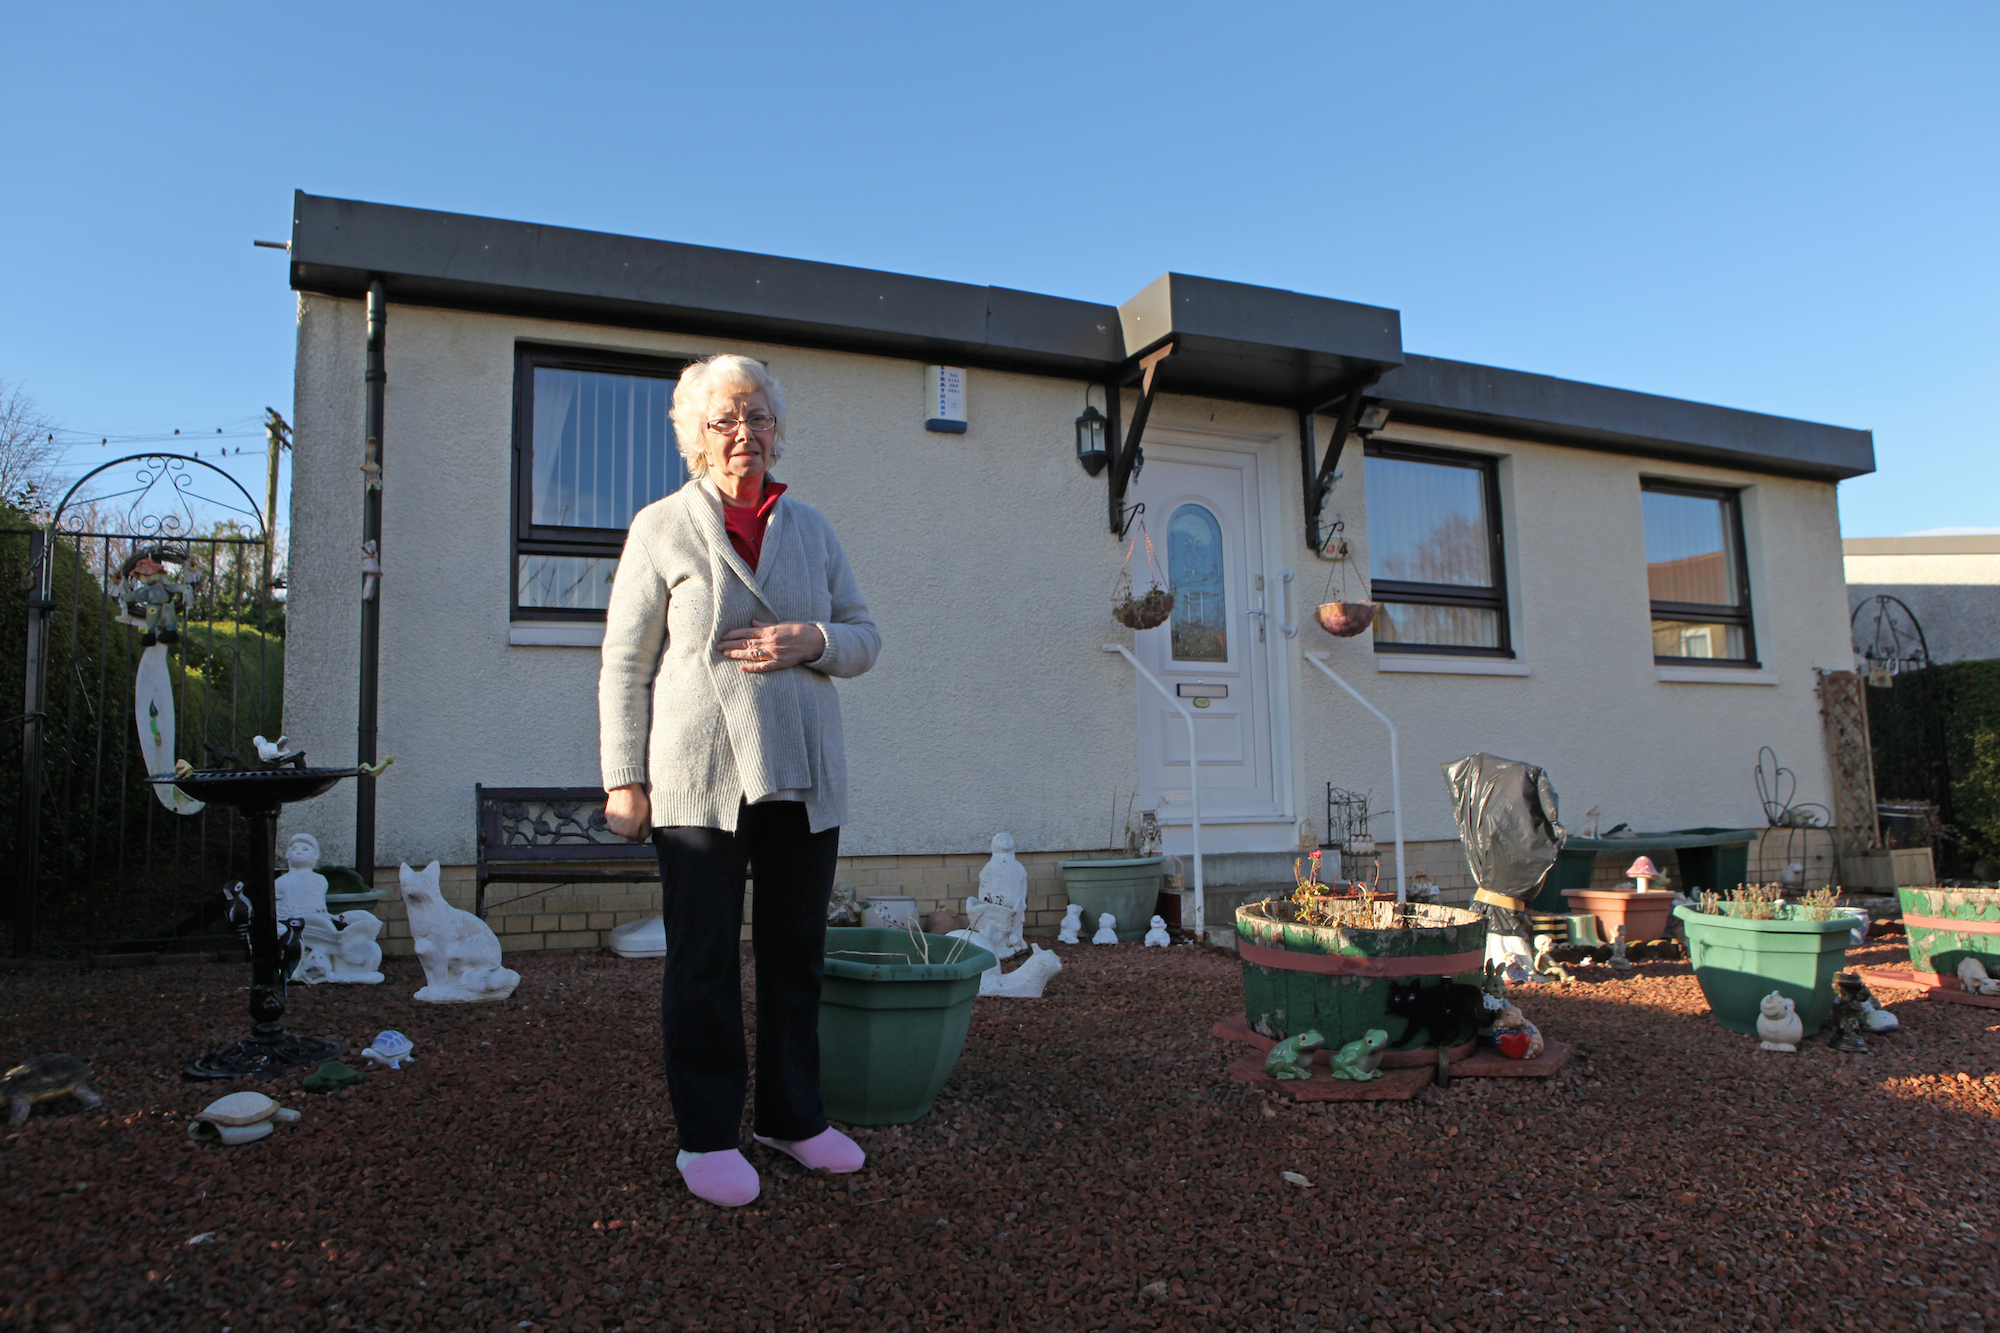 A lady outside her AIROH prefab, 2012. Post-war prefabricated houses in Paisley, near Glasgow, Scotland